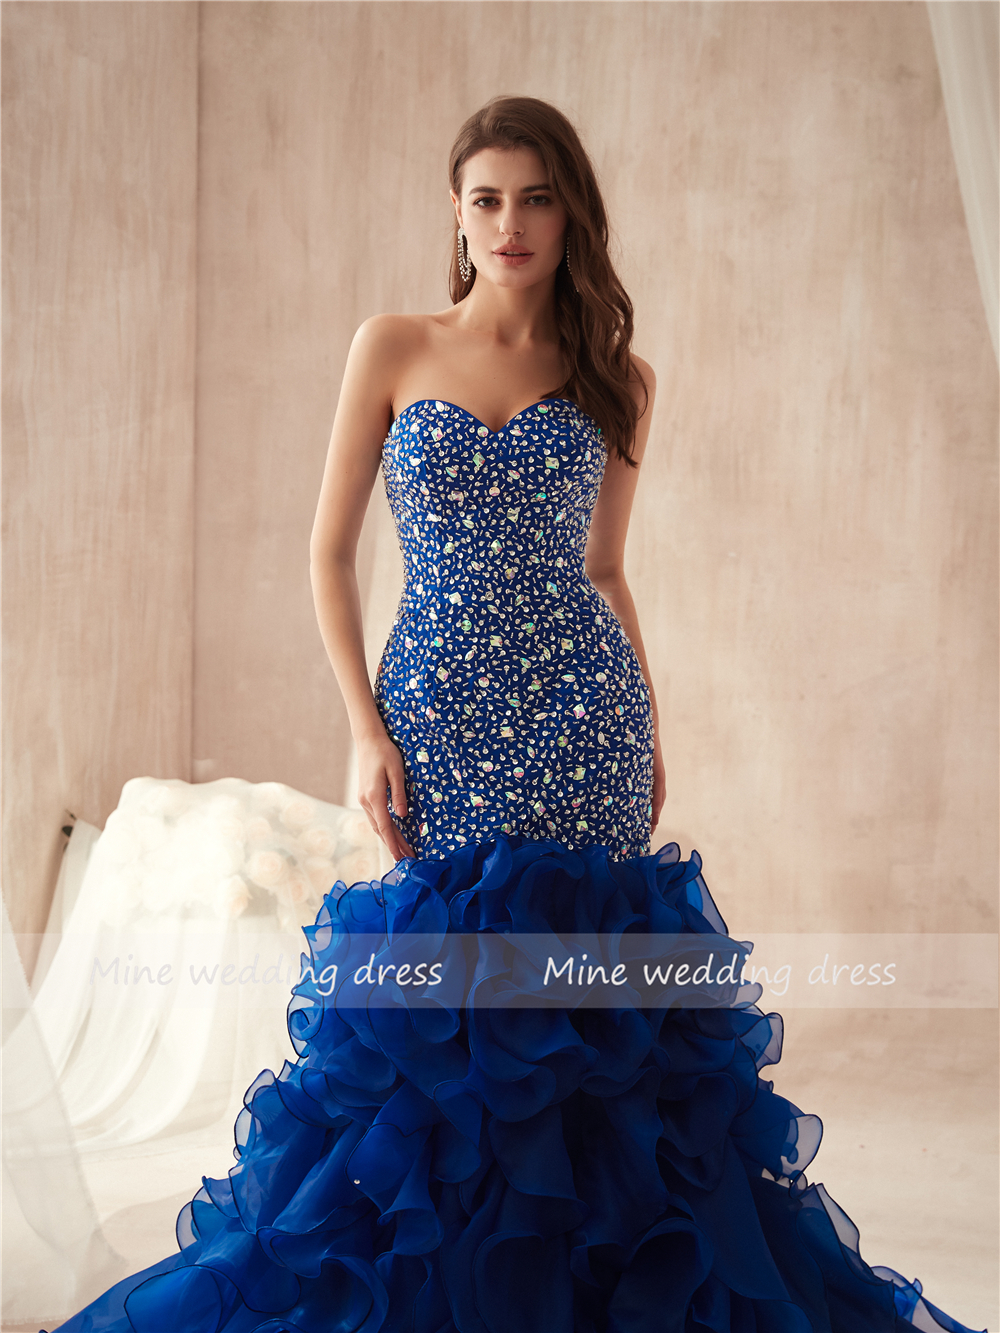 Strapless Royal Blue Colorful Beading Mermaid Prom Dresses Ruffled Organza Plus Size Famous Evening Gowns Party Gowns